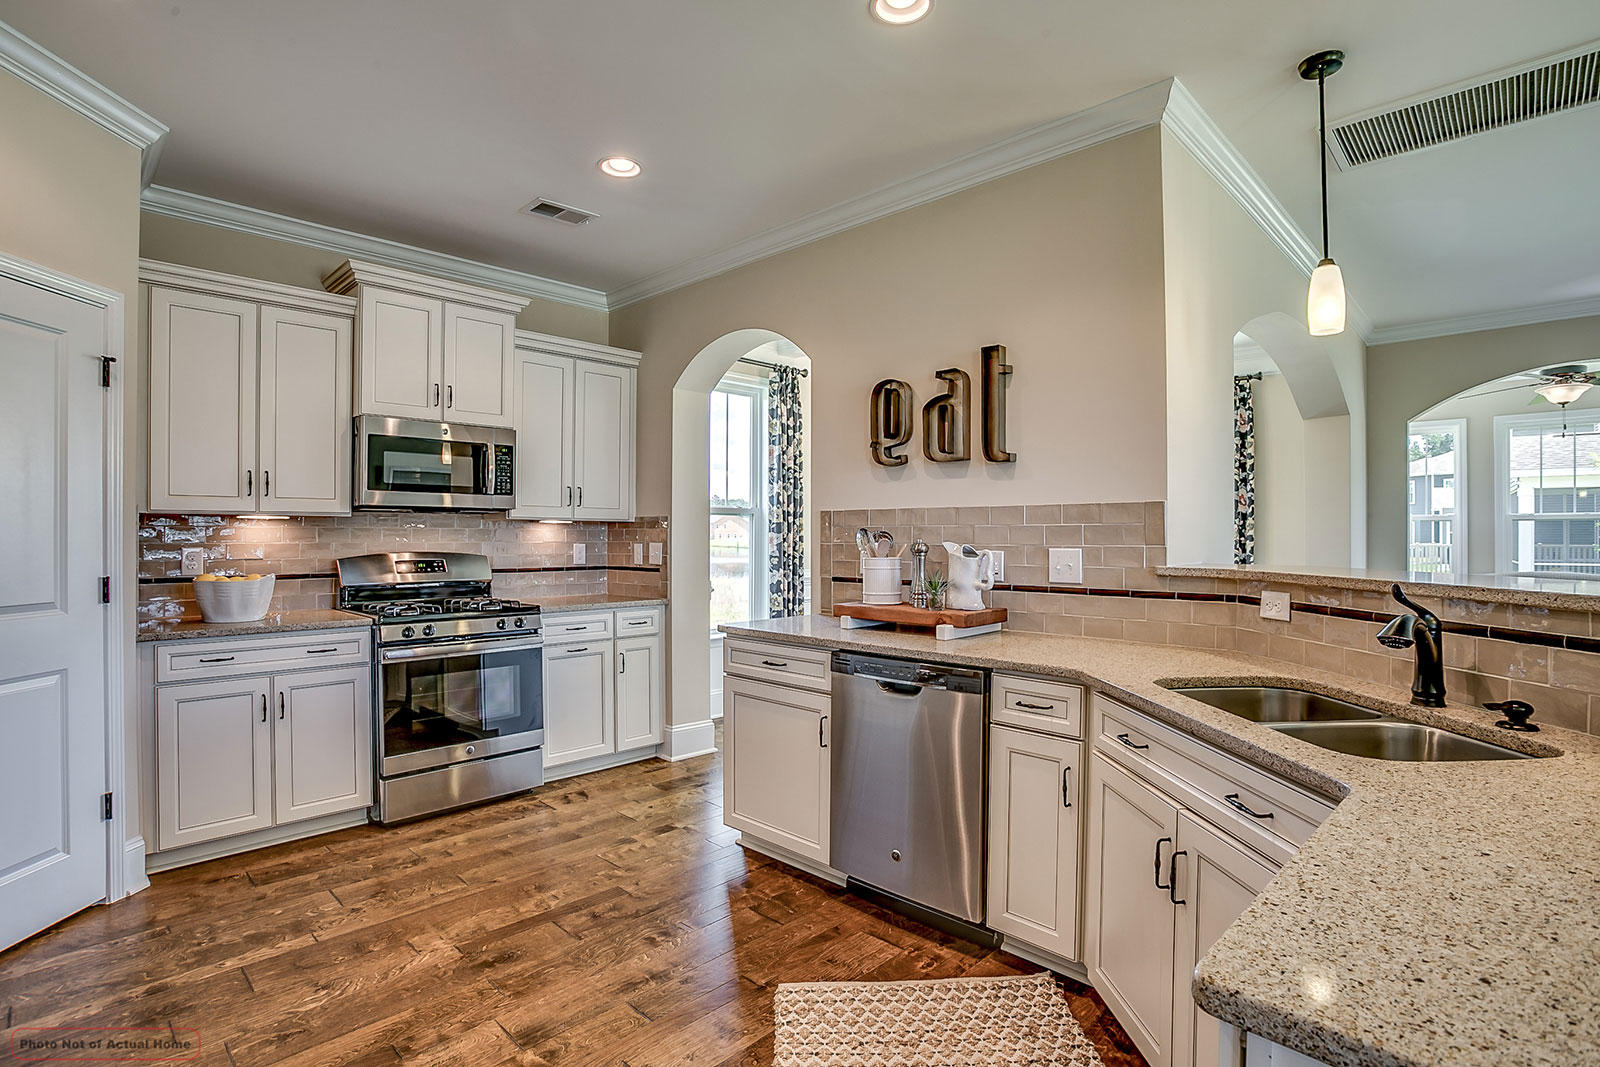 Church Creek Landing Homes For Sale - 2305 Town Woods, Charleston, SC - 24